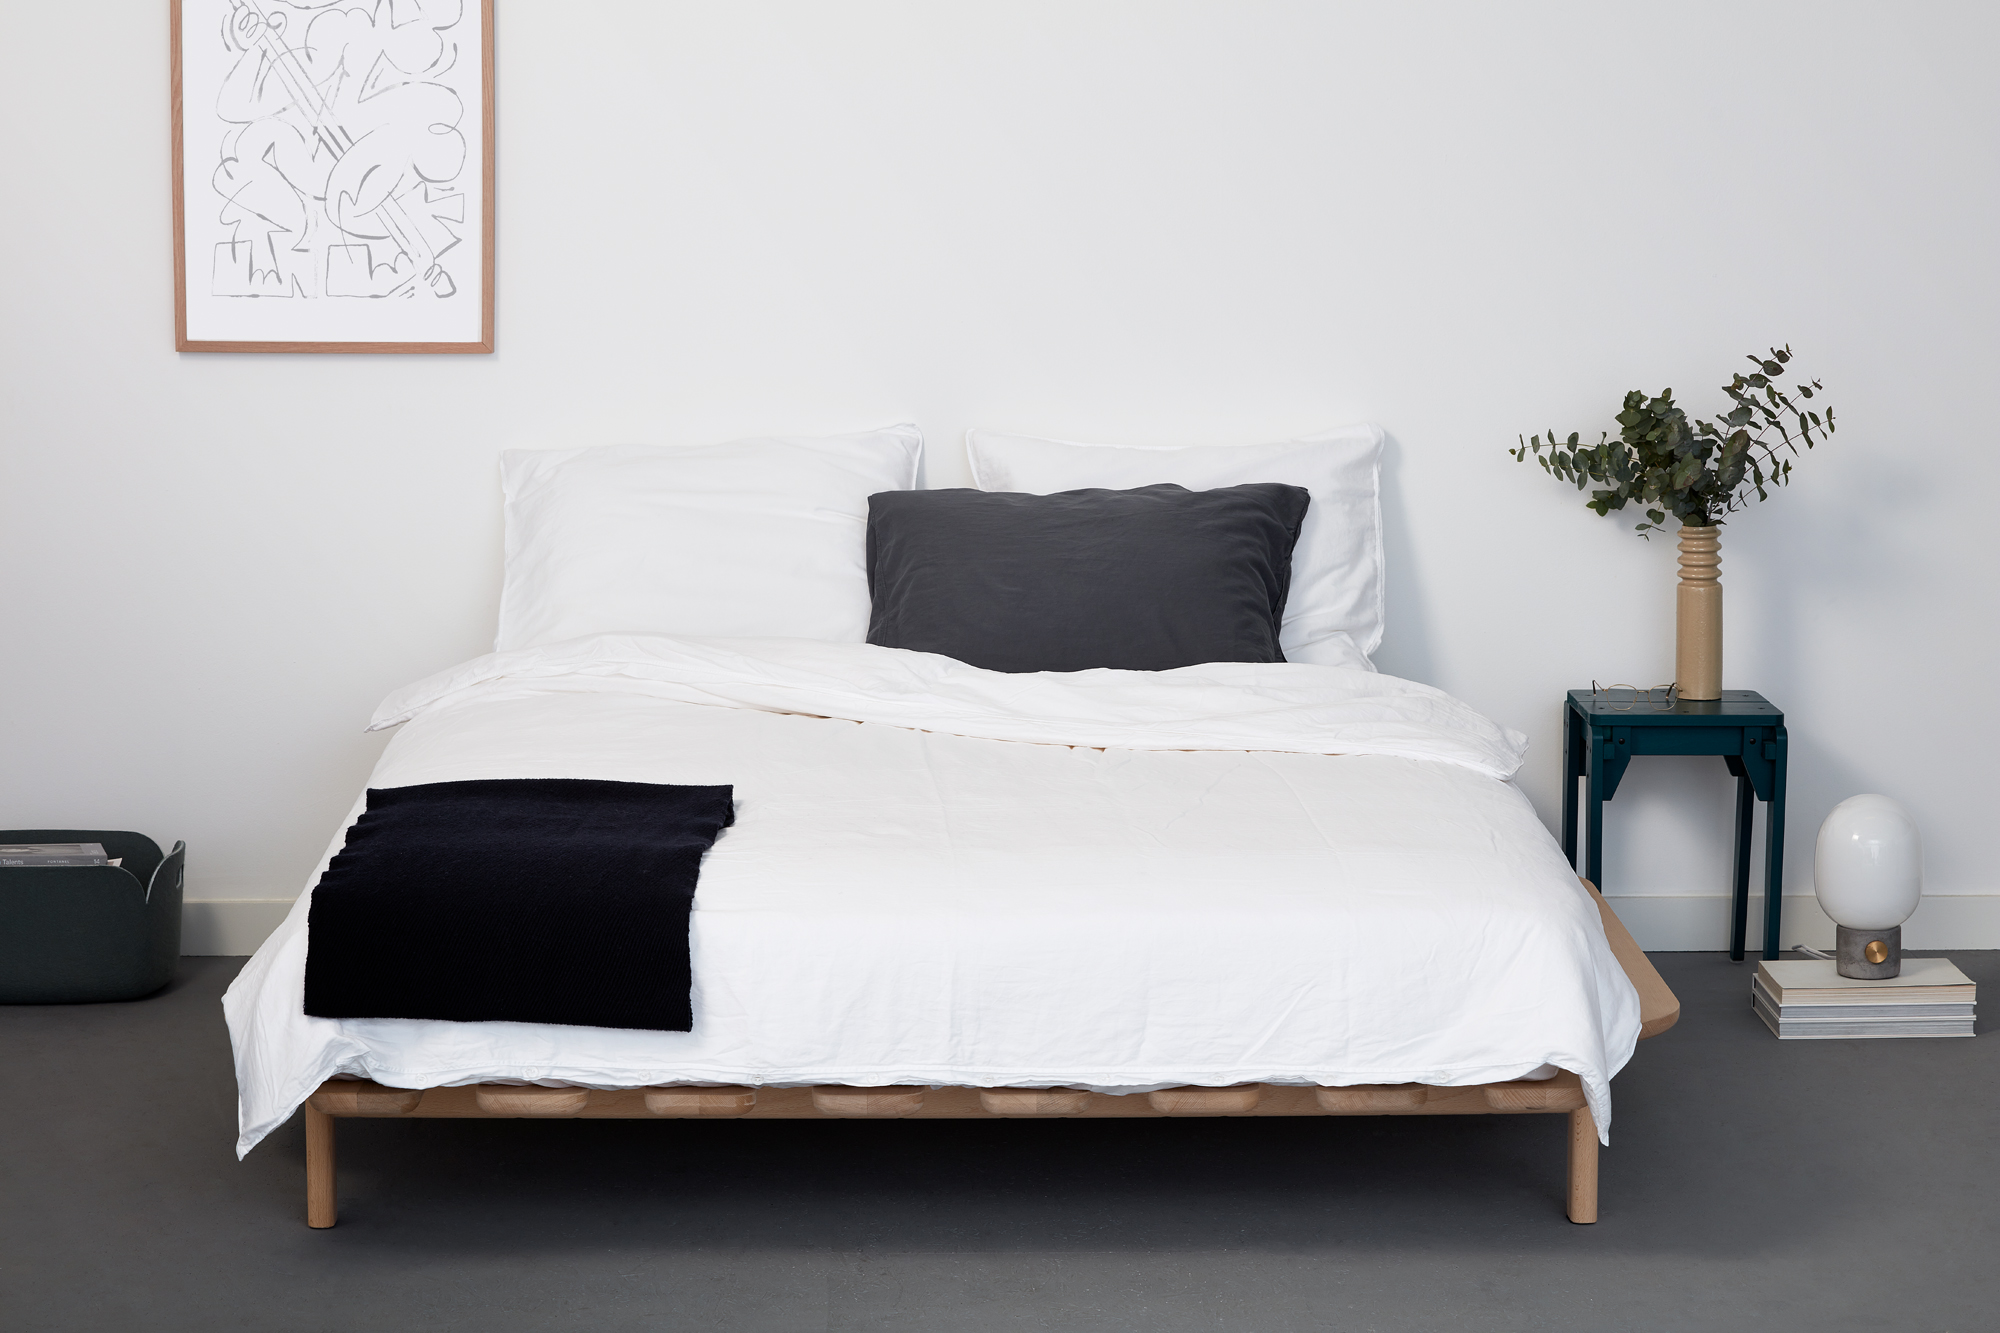 Modest Bed by Justin Jorissen for Loof